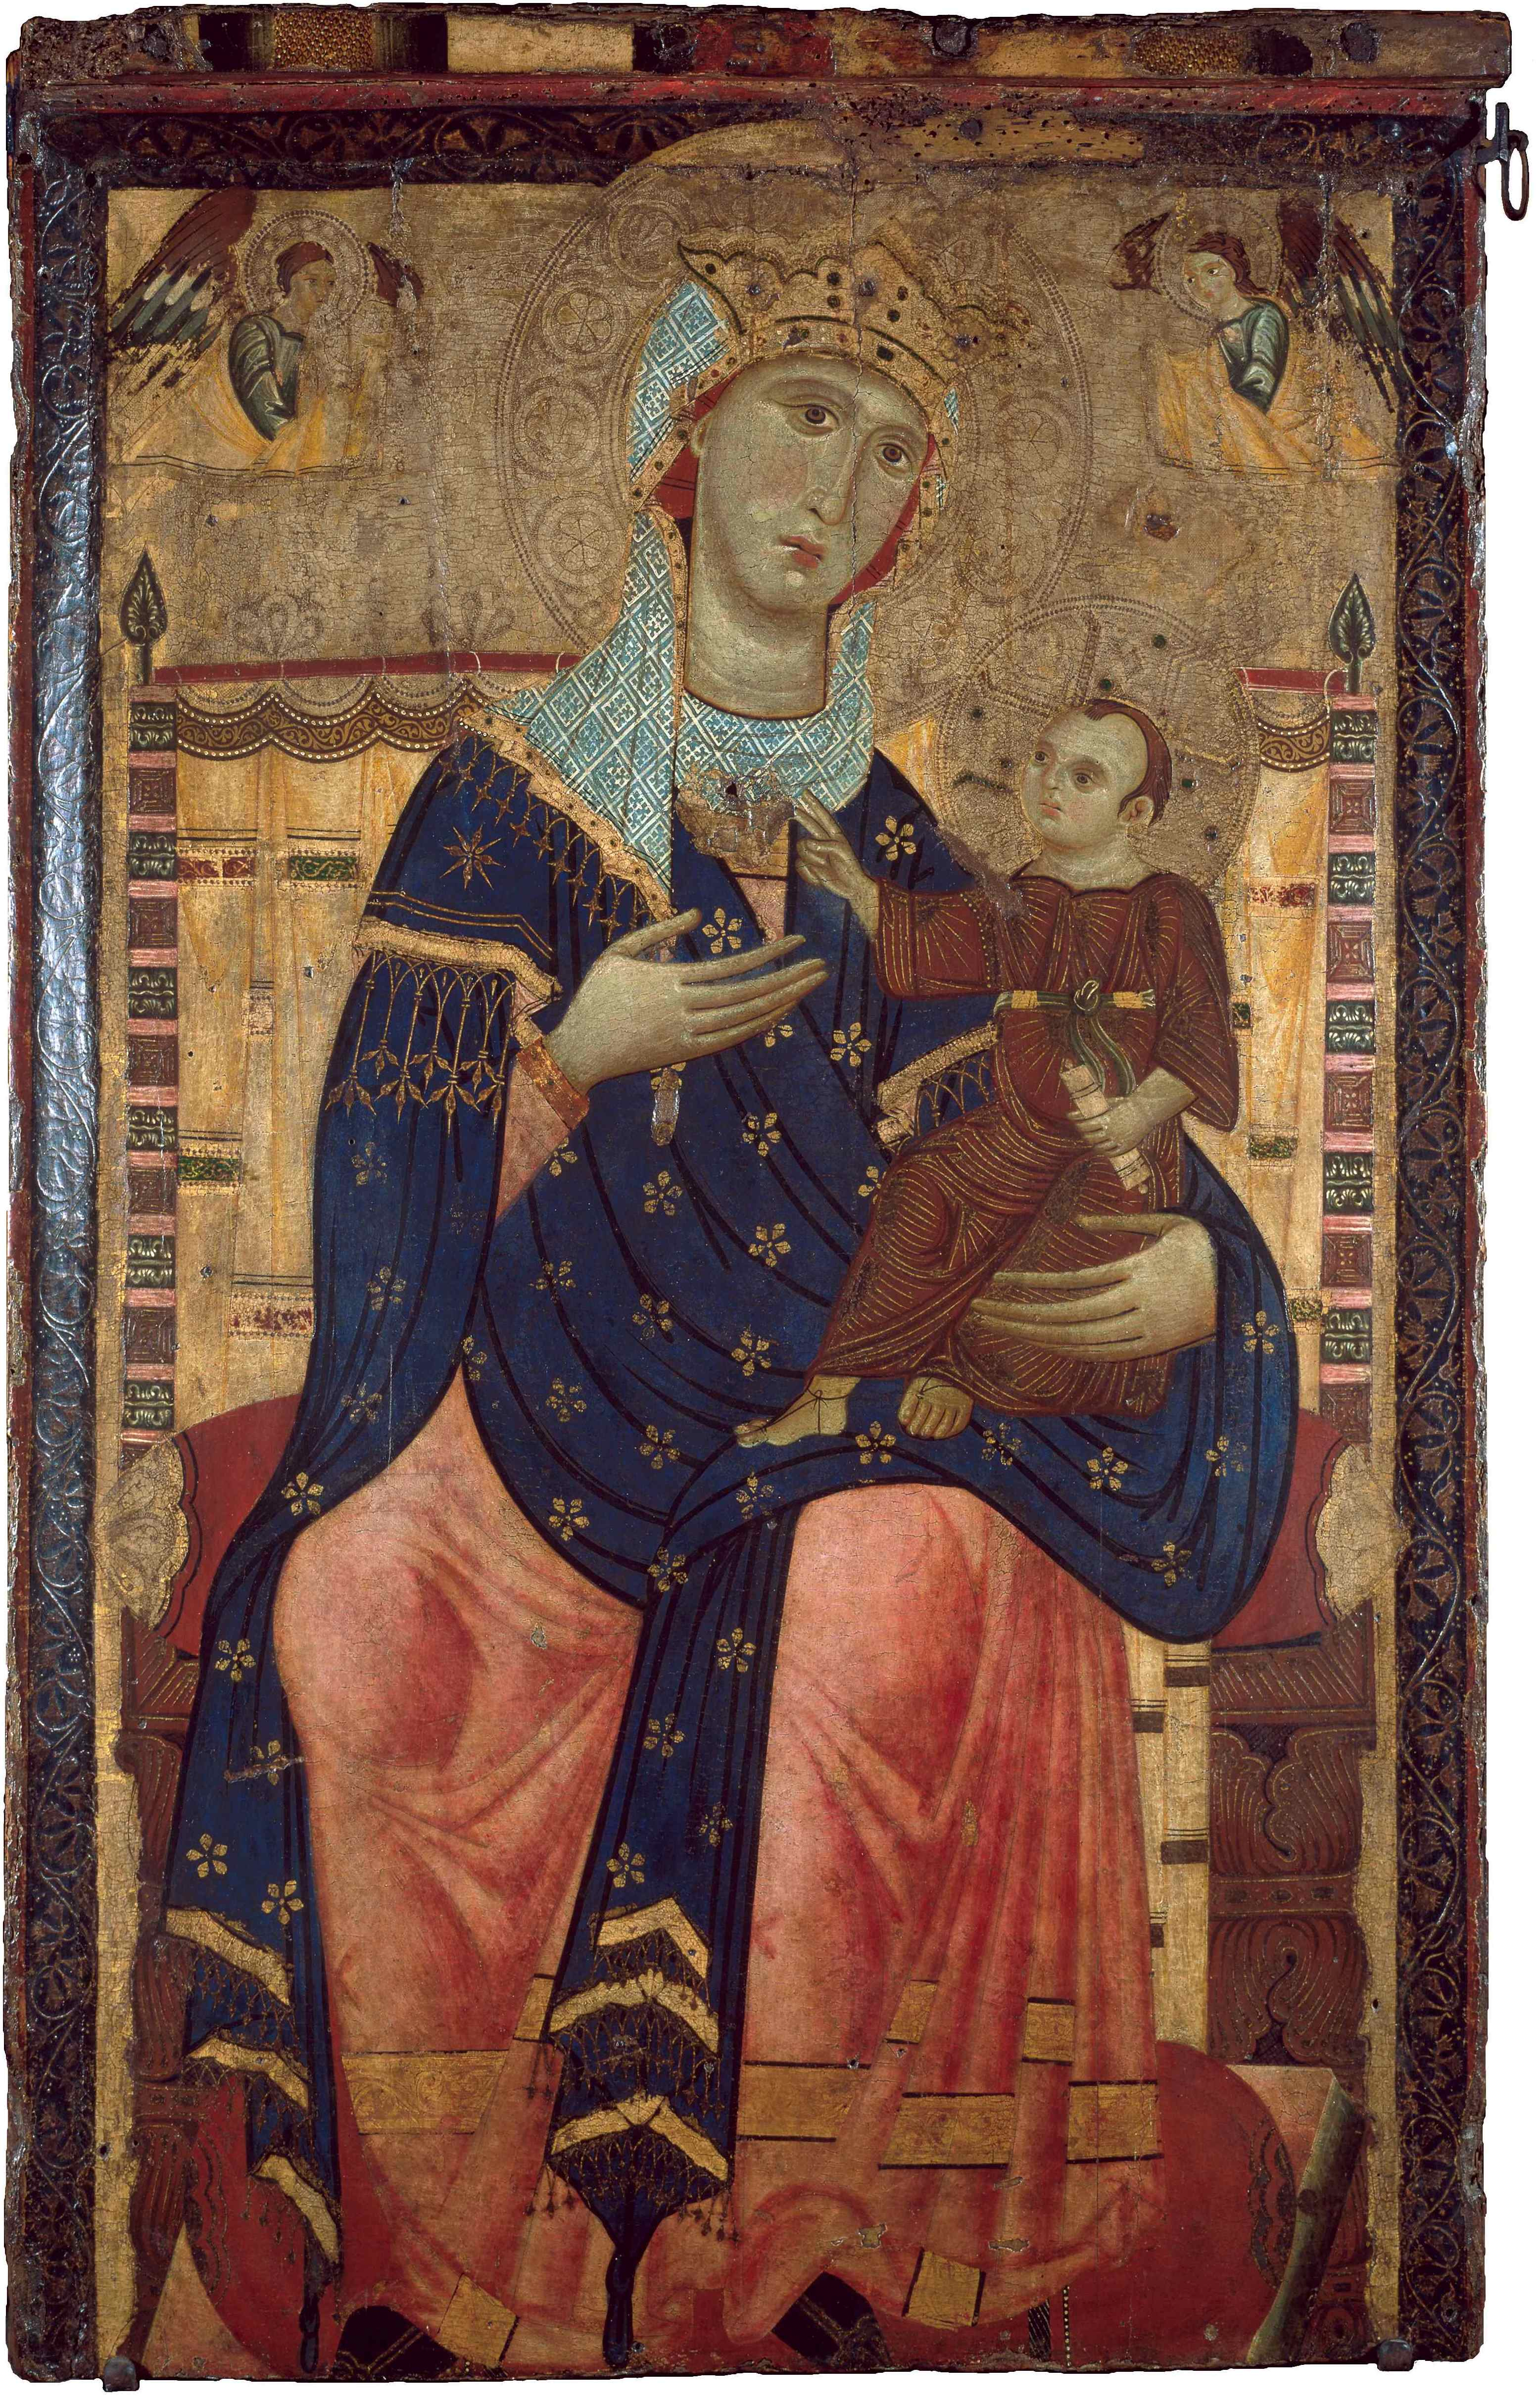 Lucchesischer Meister, Thronende Madonna mit Kind, um 1260/70, 104 × 63 cm; Wallraf-Richartz-Museum & Fondation Corboud; © Wallraf-Richartz-Museum & Fondation Corboud